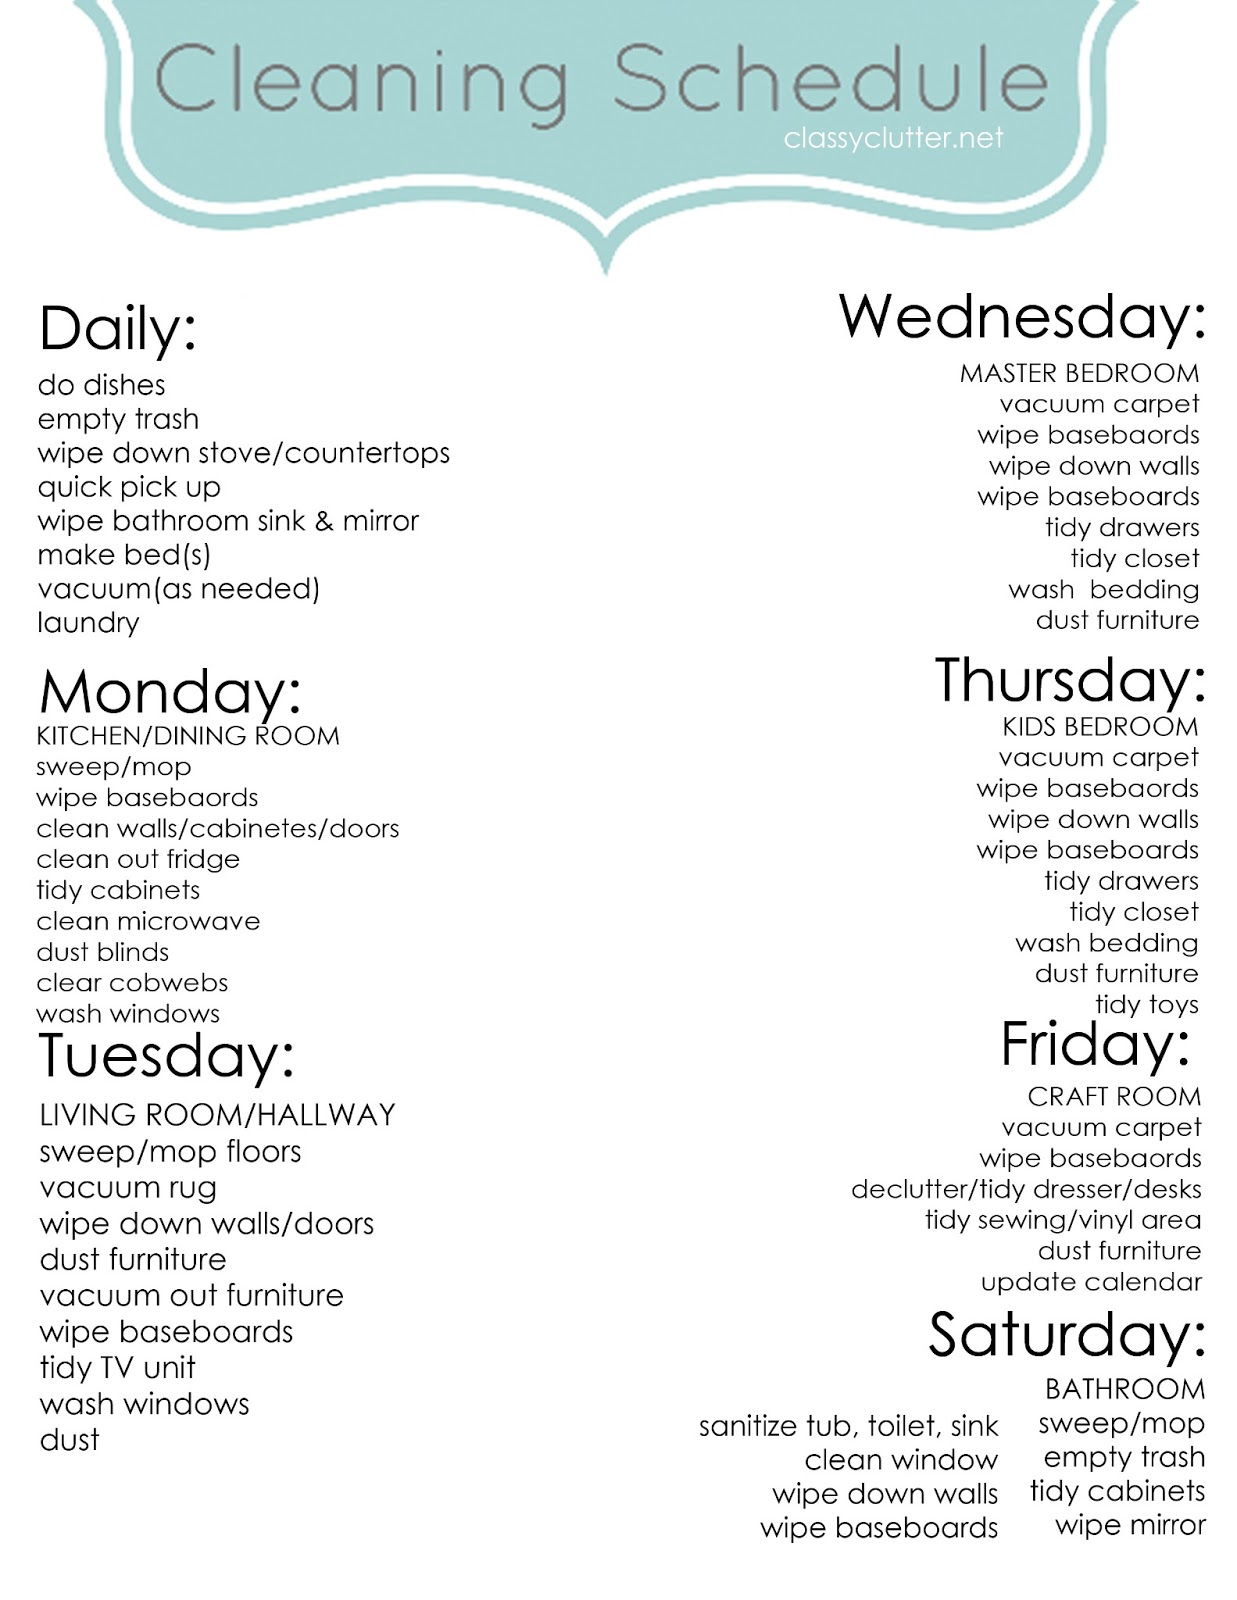 photograph relating to Cleaning List Printable named Weekly Cleansing Routine: Strengthen Your Cleansing Practices